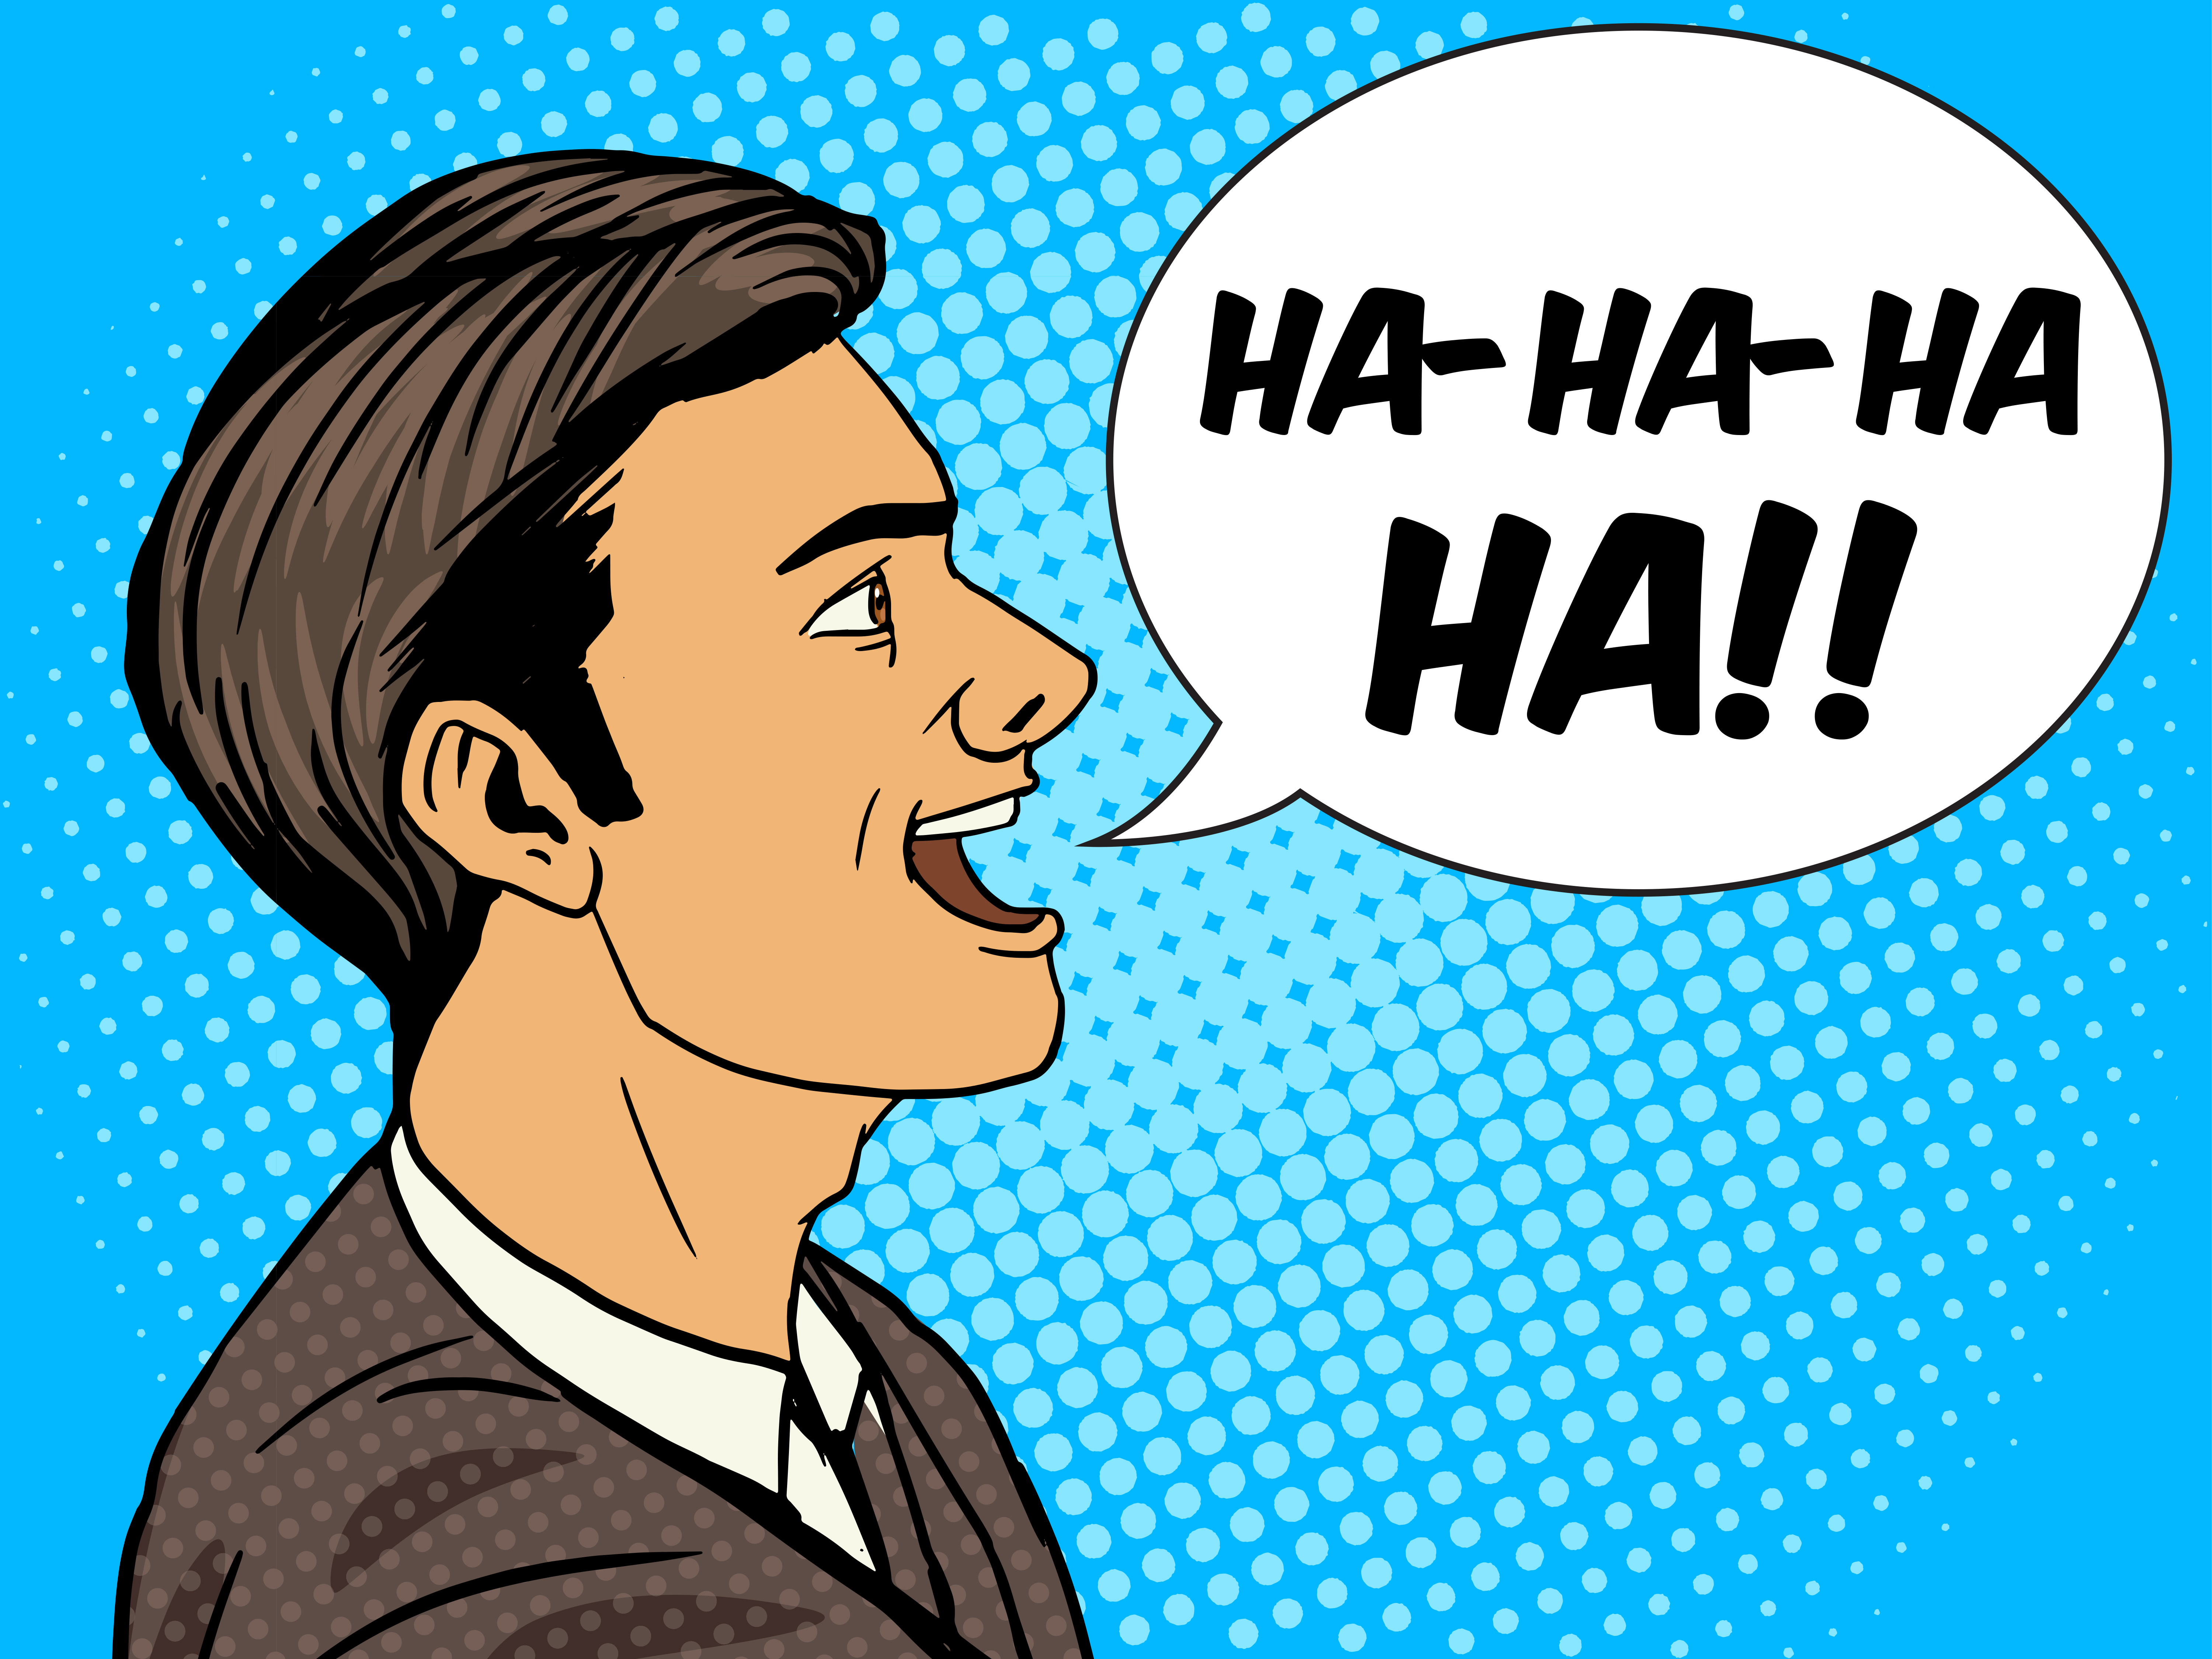 Getting Serious About Funny Psychologists See Humor As A Character Strength